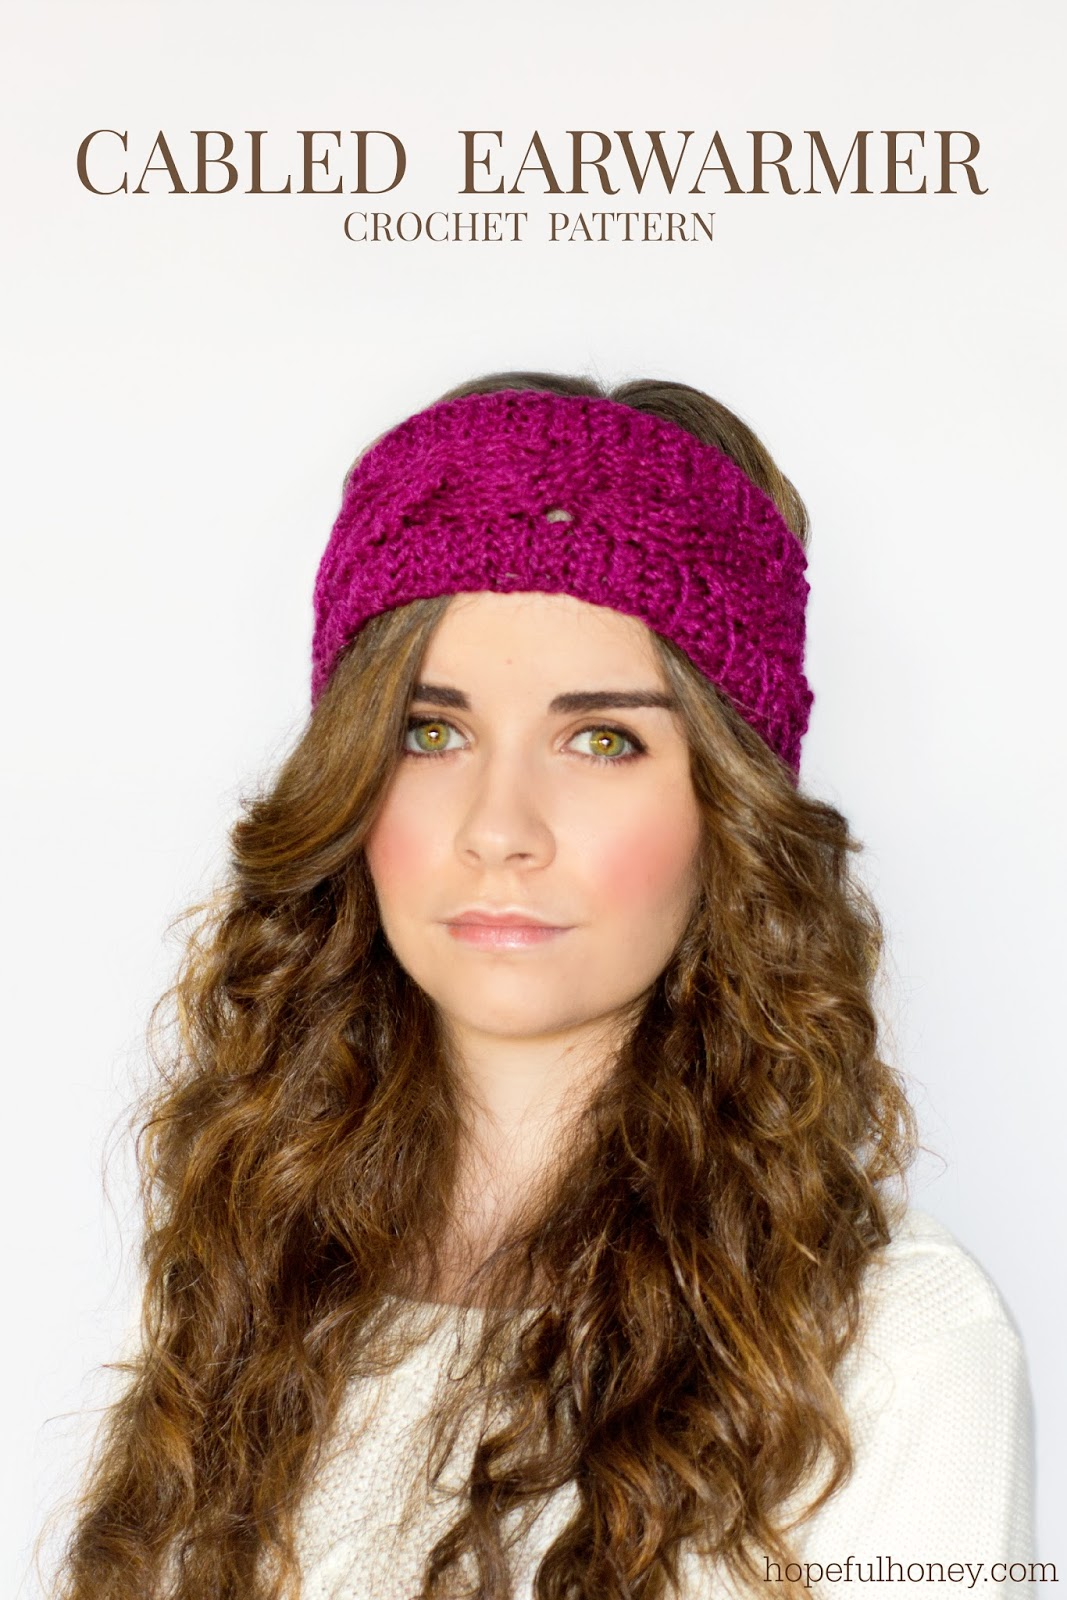 Free Crochet Pattern For Ladies Headband : Hopeful Honey Craft, Crochet, Create: Cabled Earwarmer ...